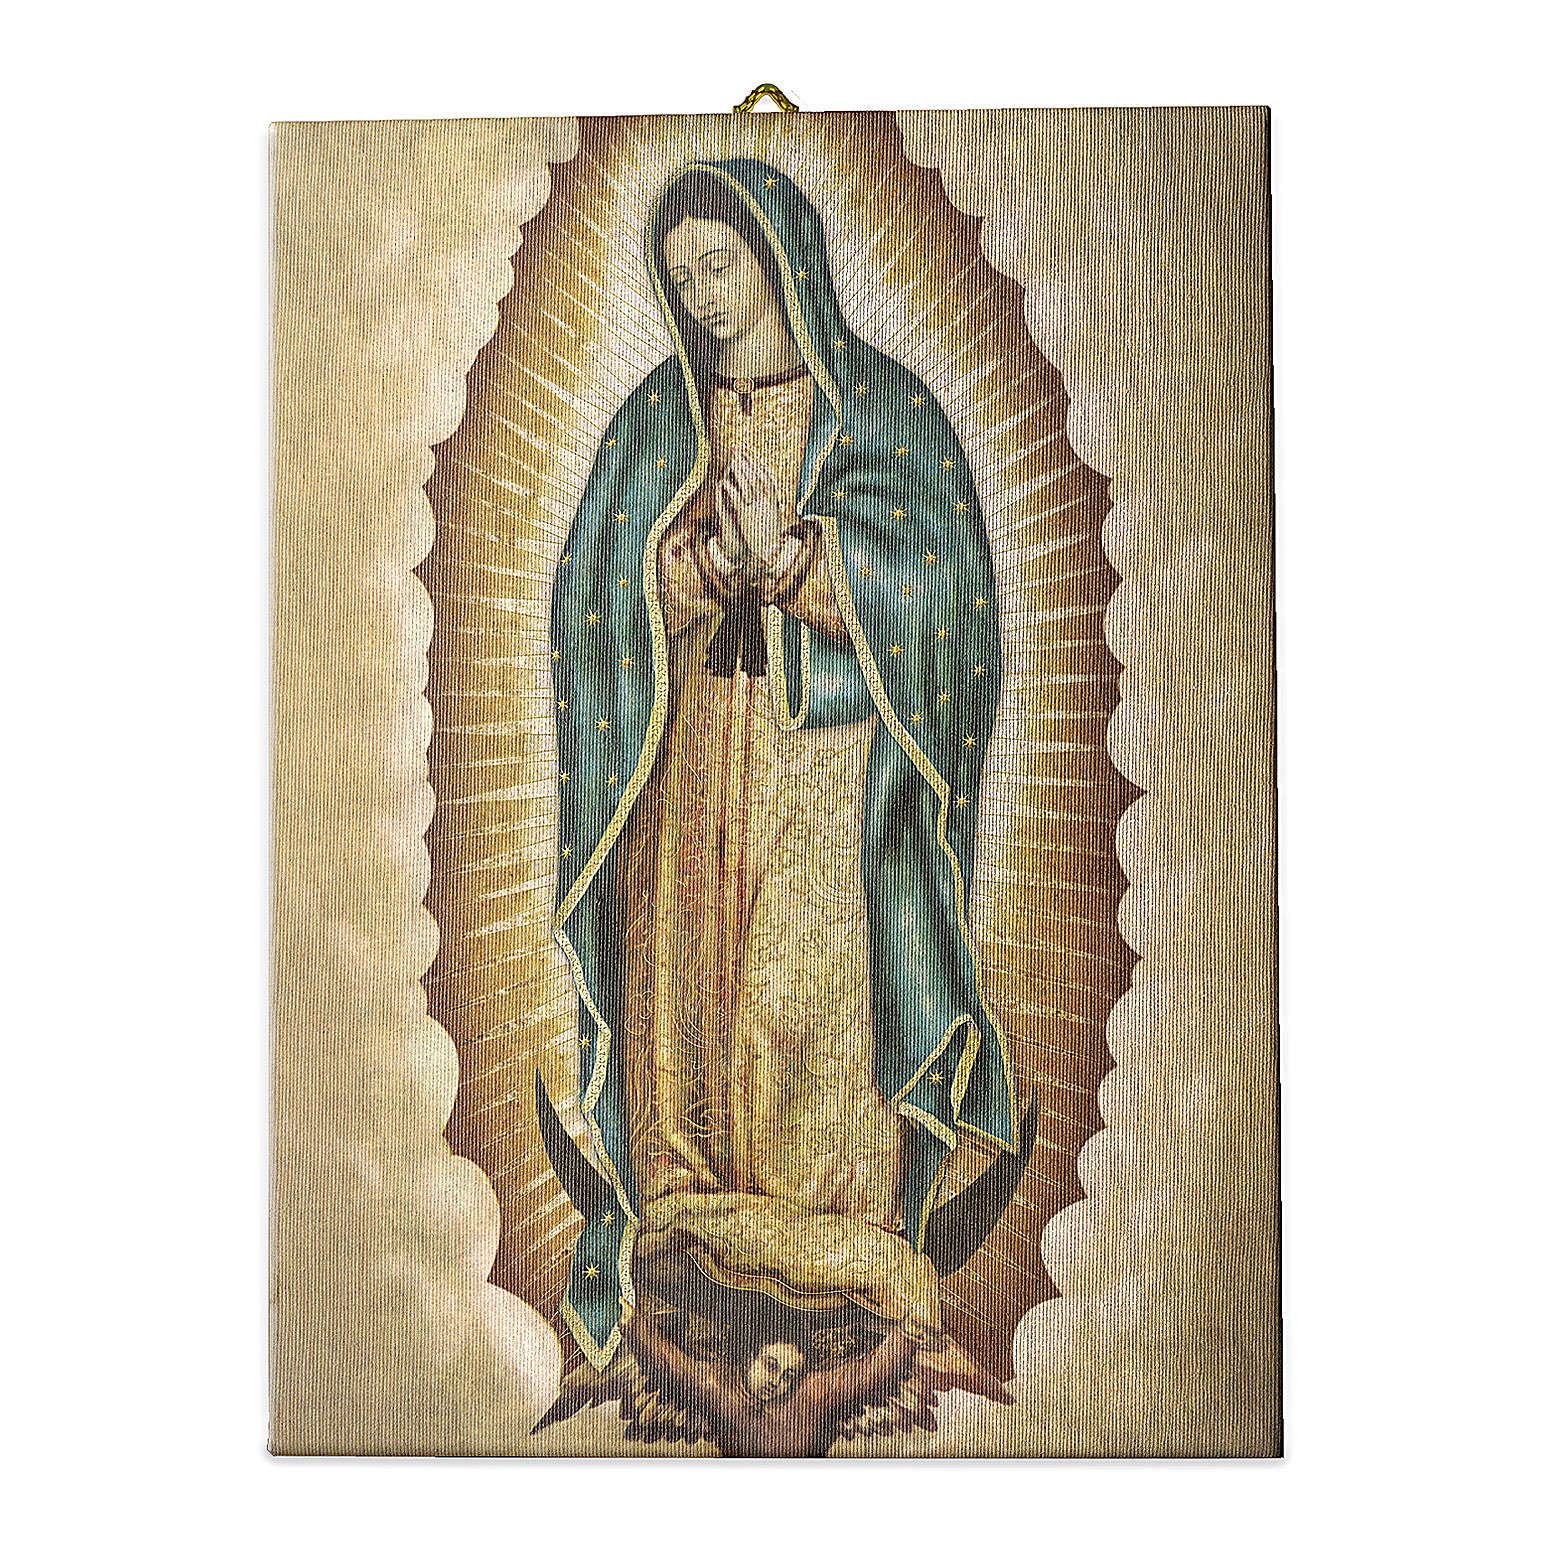 Madonna of Guadalupe printed on canvas 25x20 cm 3